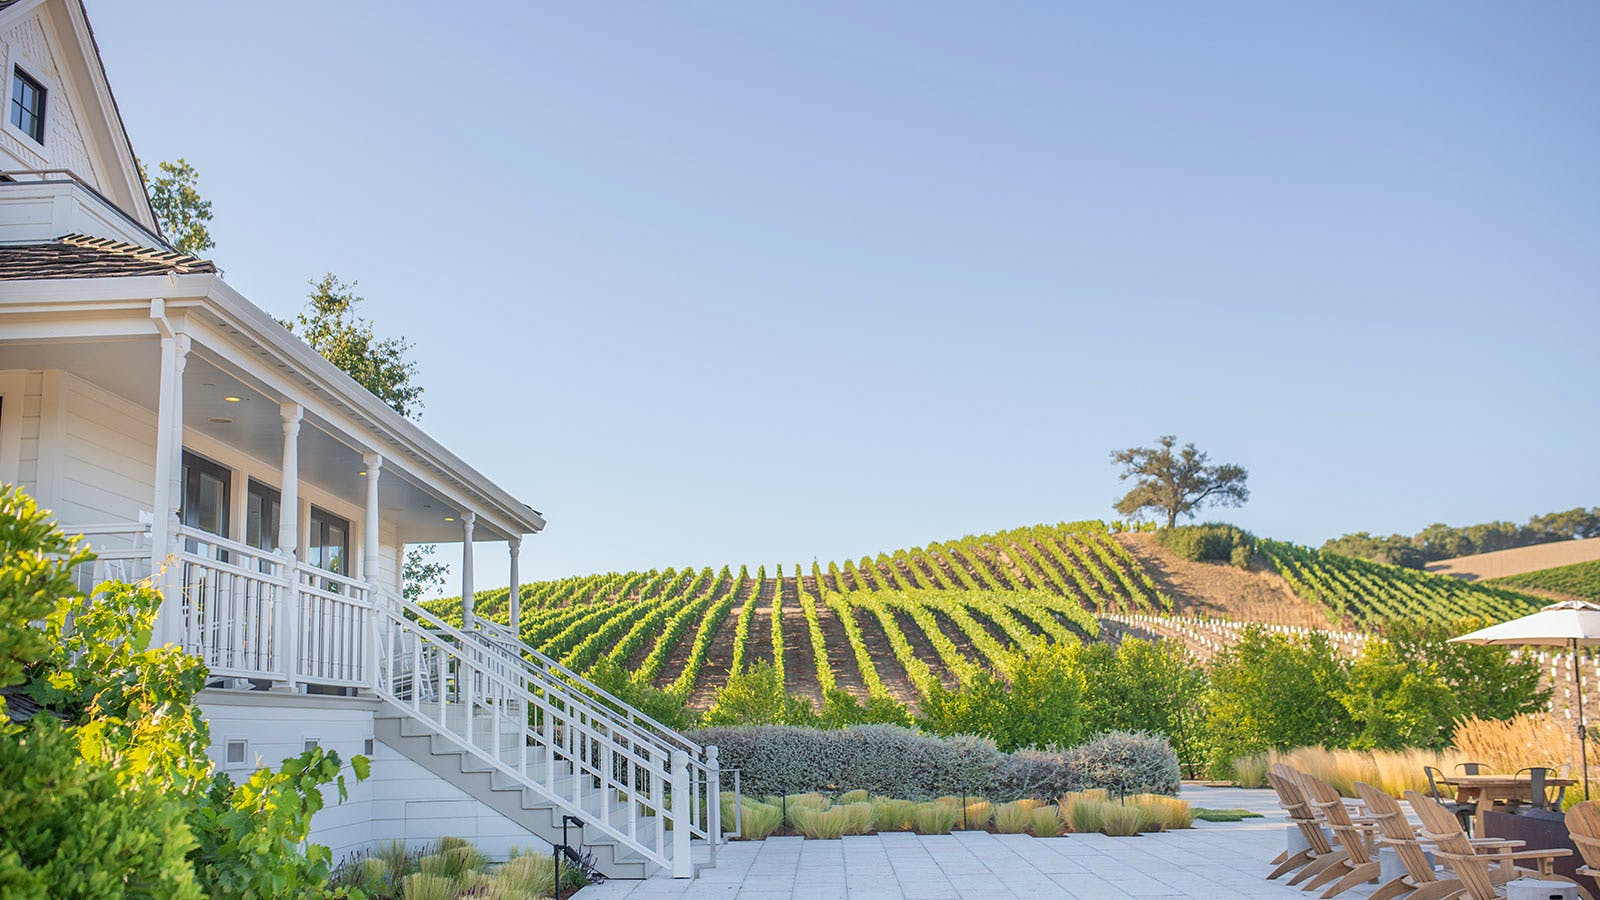 SingleThread Farms Premieres Rooftop Wine Bar and Kistler Dinner Series Collaboration